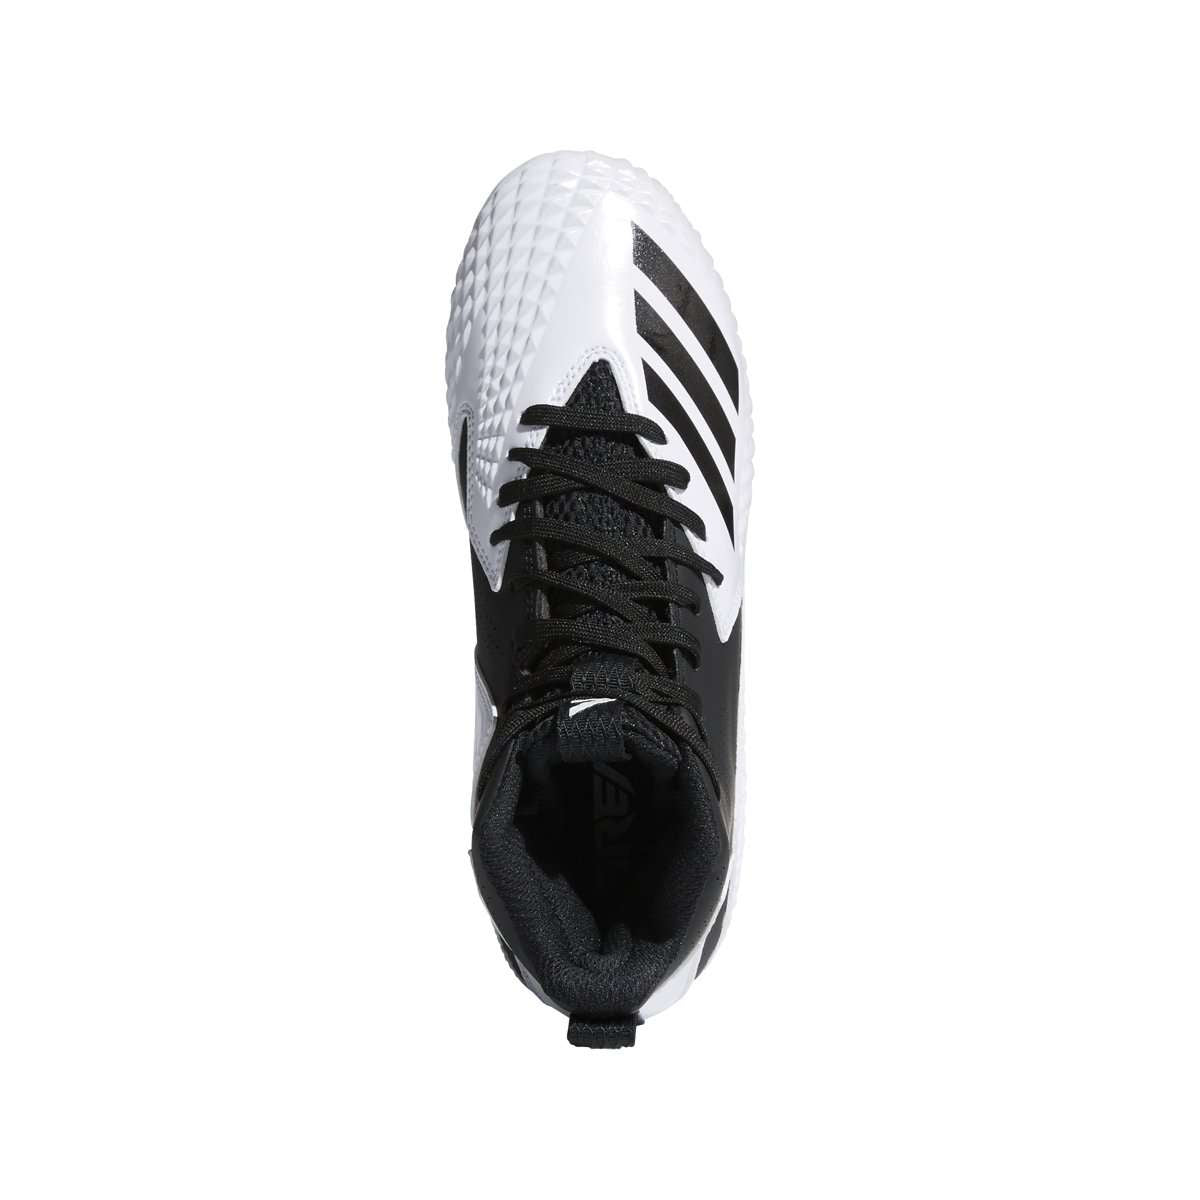 86faa29387d ... adidas Freak Mid MD Football Cleats - League Outfitters ...